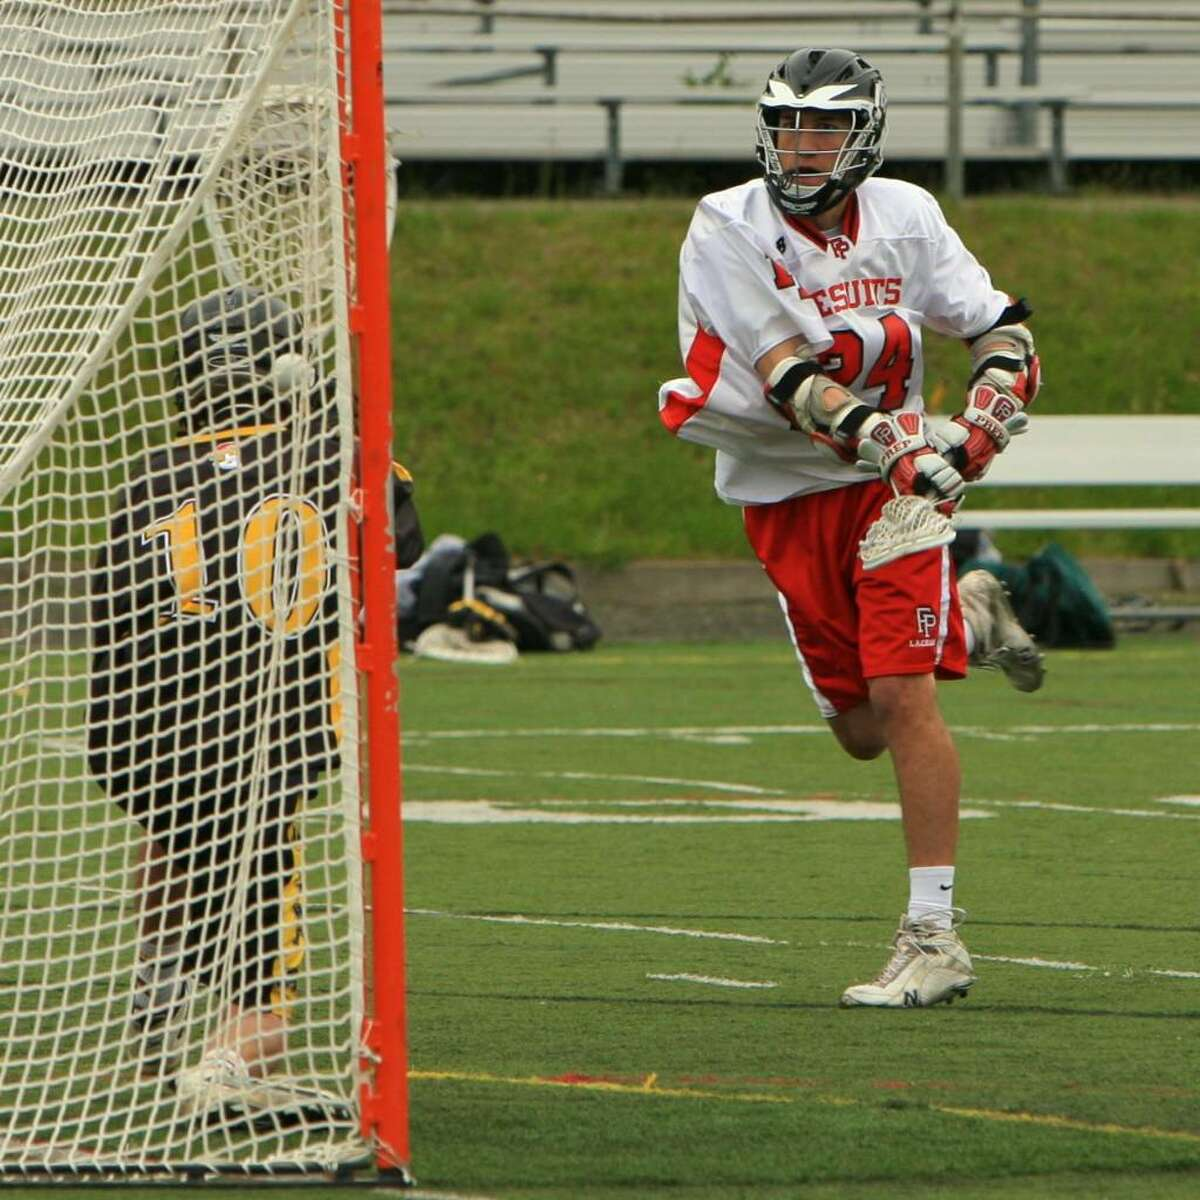 Fairfield Prep's Conner Byrne fires home his third goal of the afternoon in Prep's 19-4 win over Amity on Tuesday at Alumni Field.